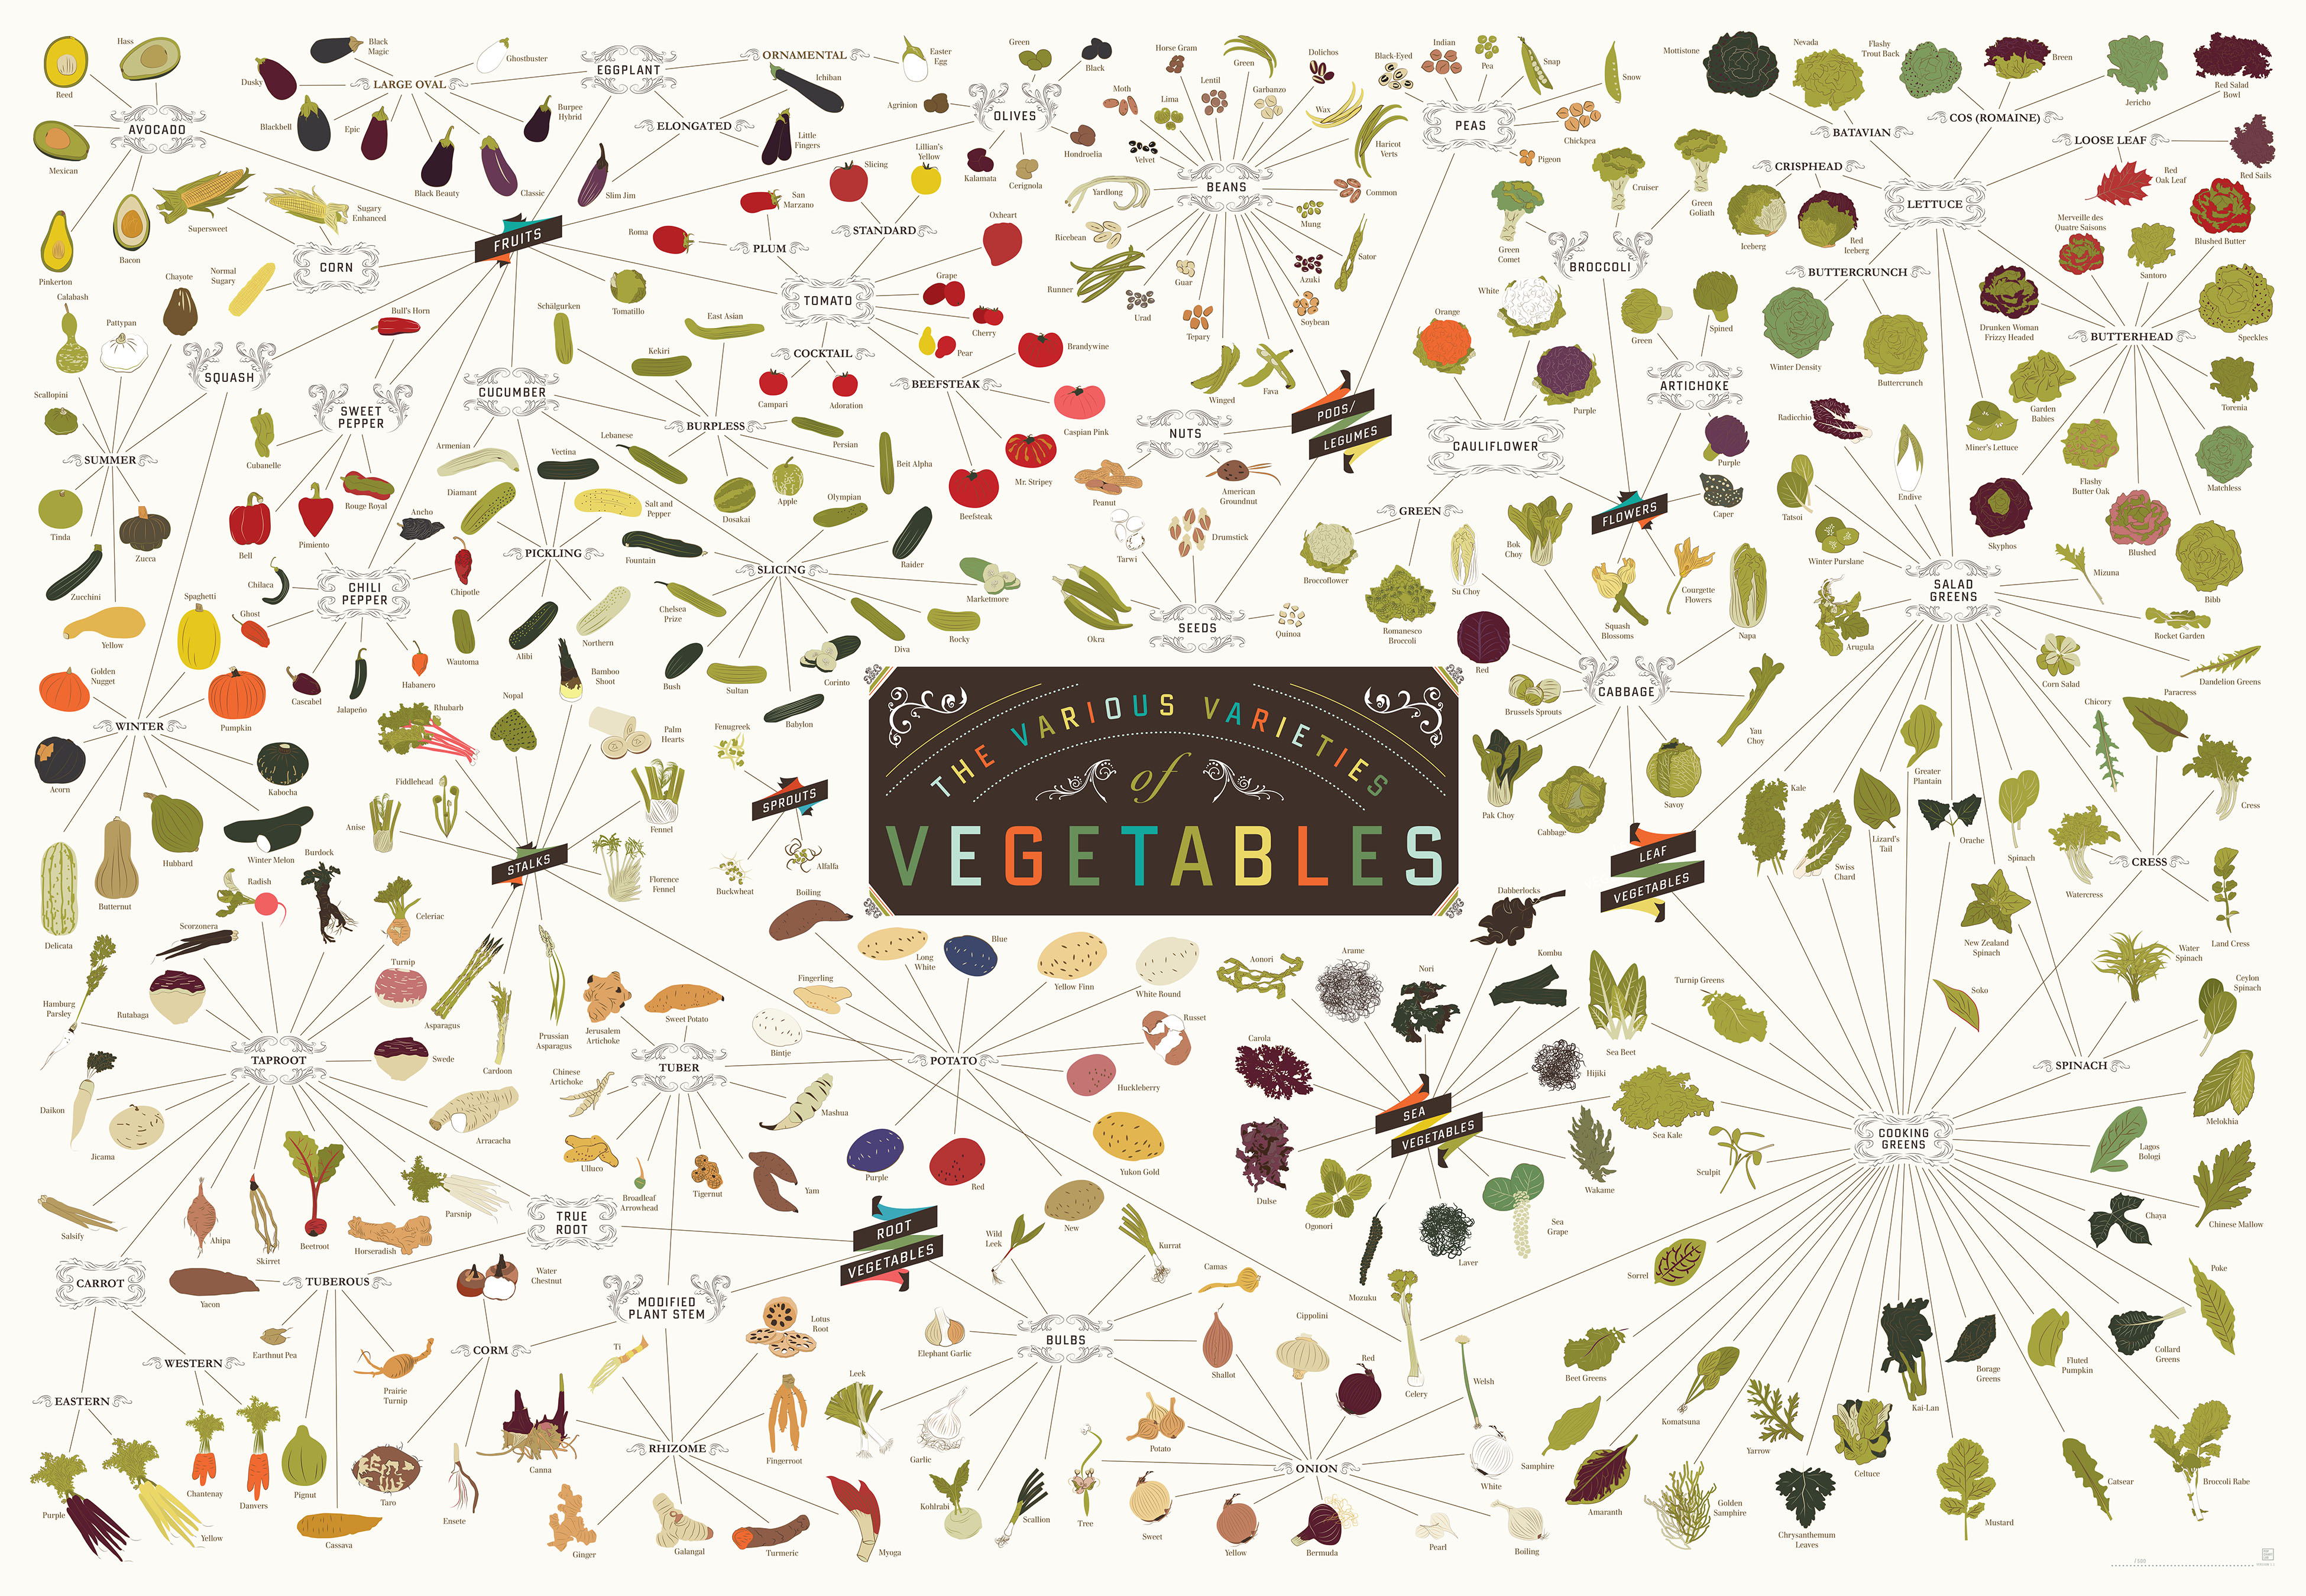 massive veggies and fruits family tree chart capturing